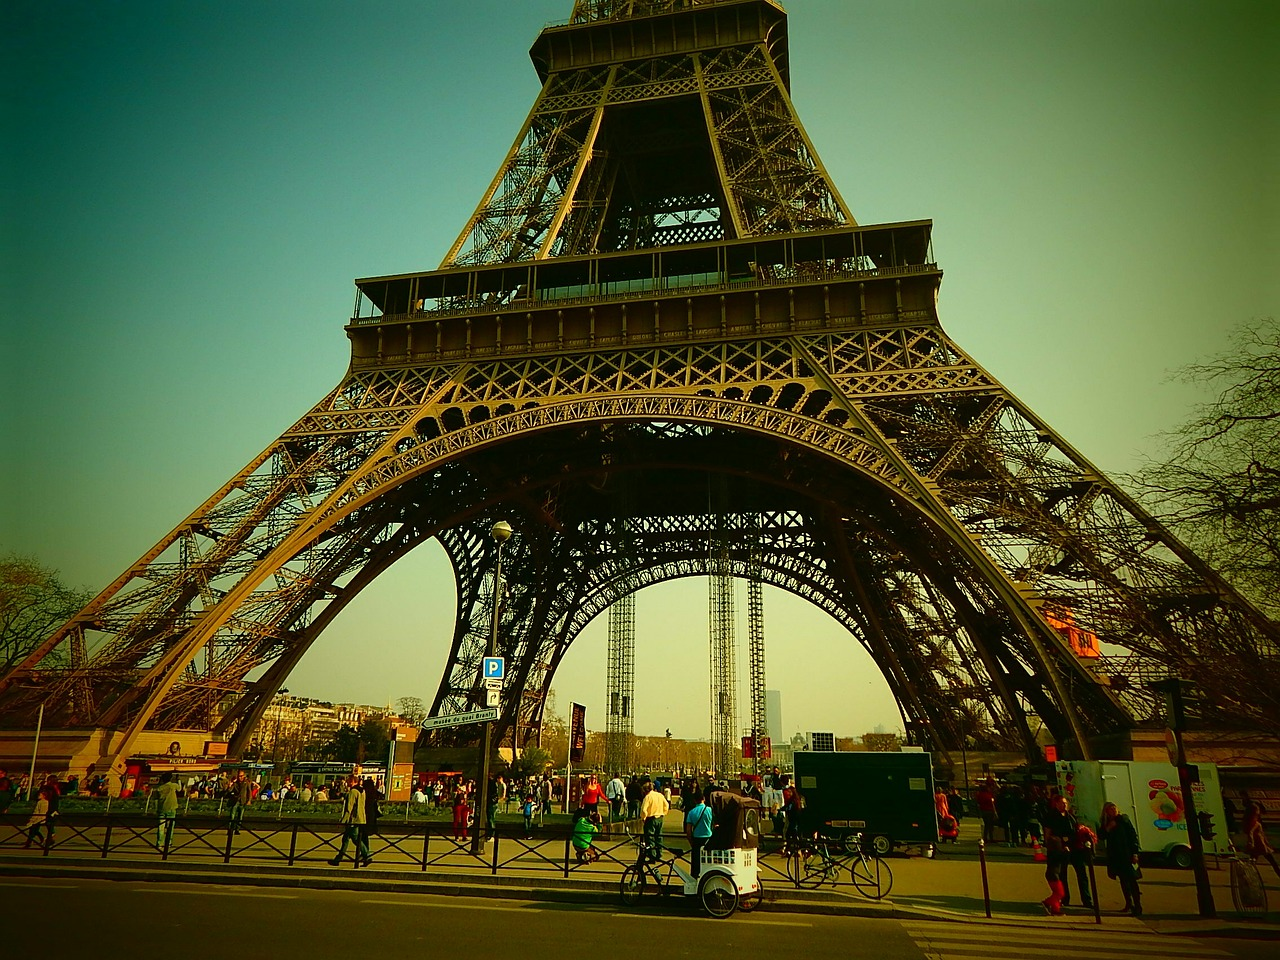 eiffel tower paris france free photo